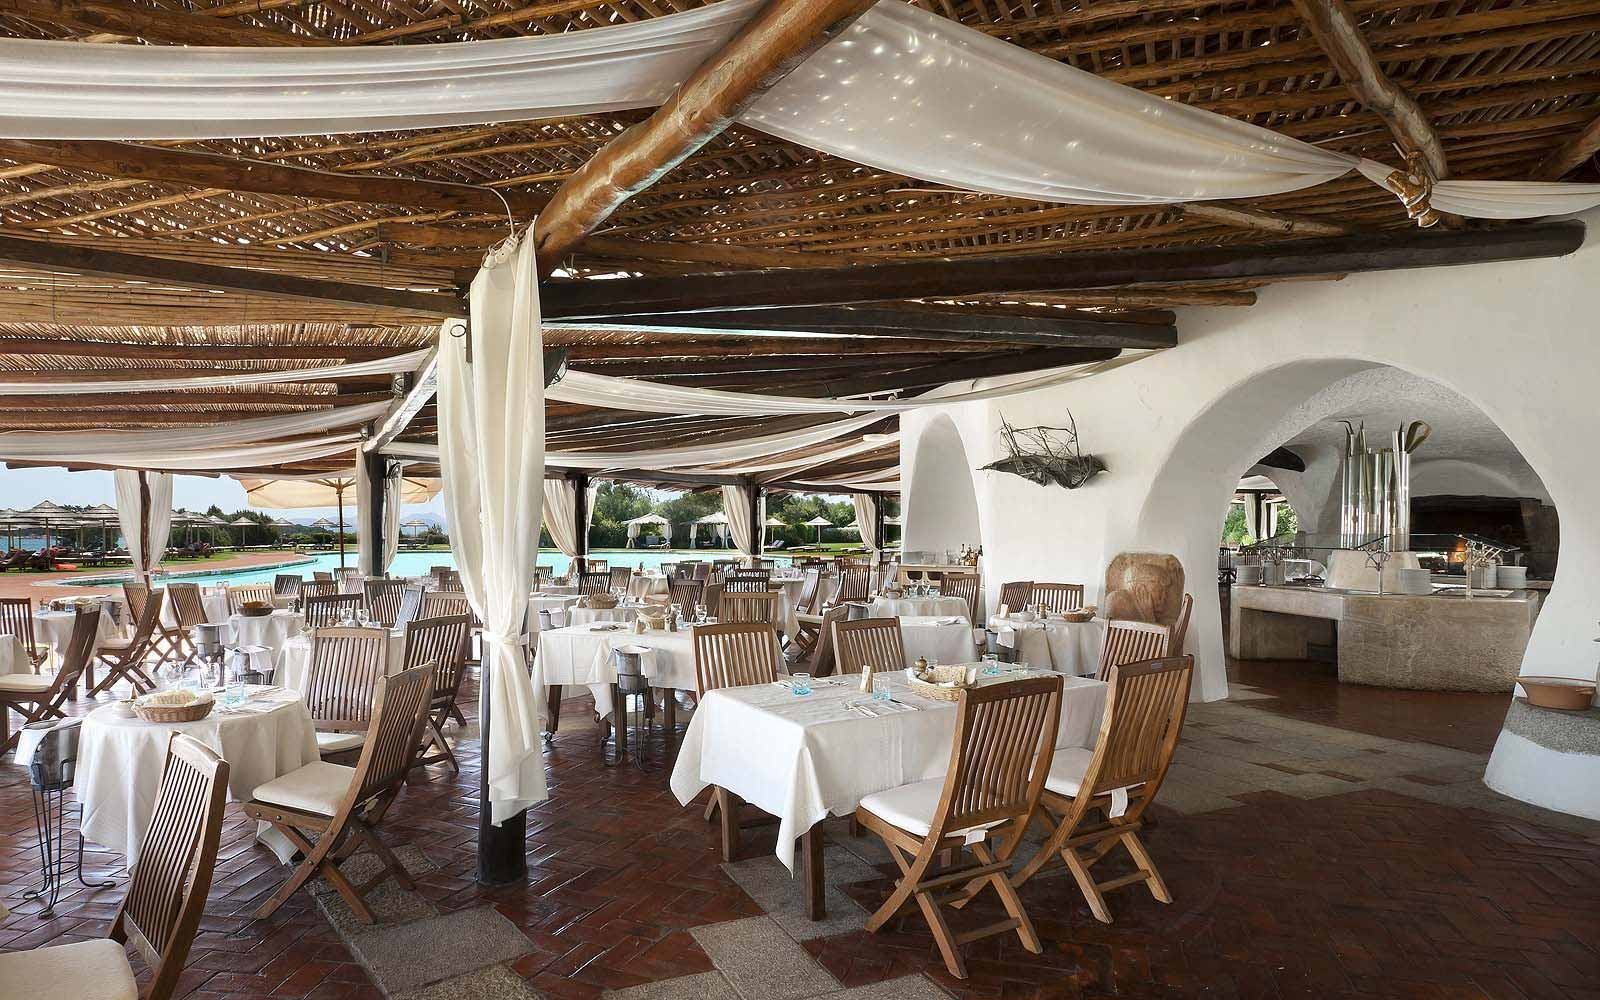 Barbecue Restaurant at the Hotel Cala di Volpe